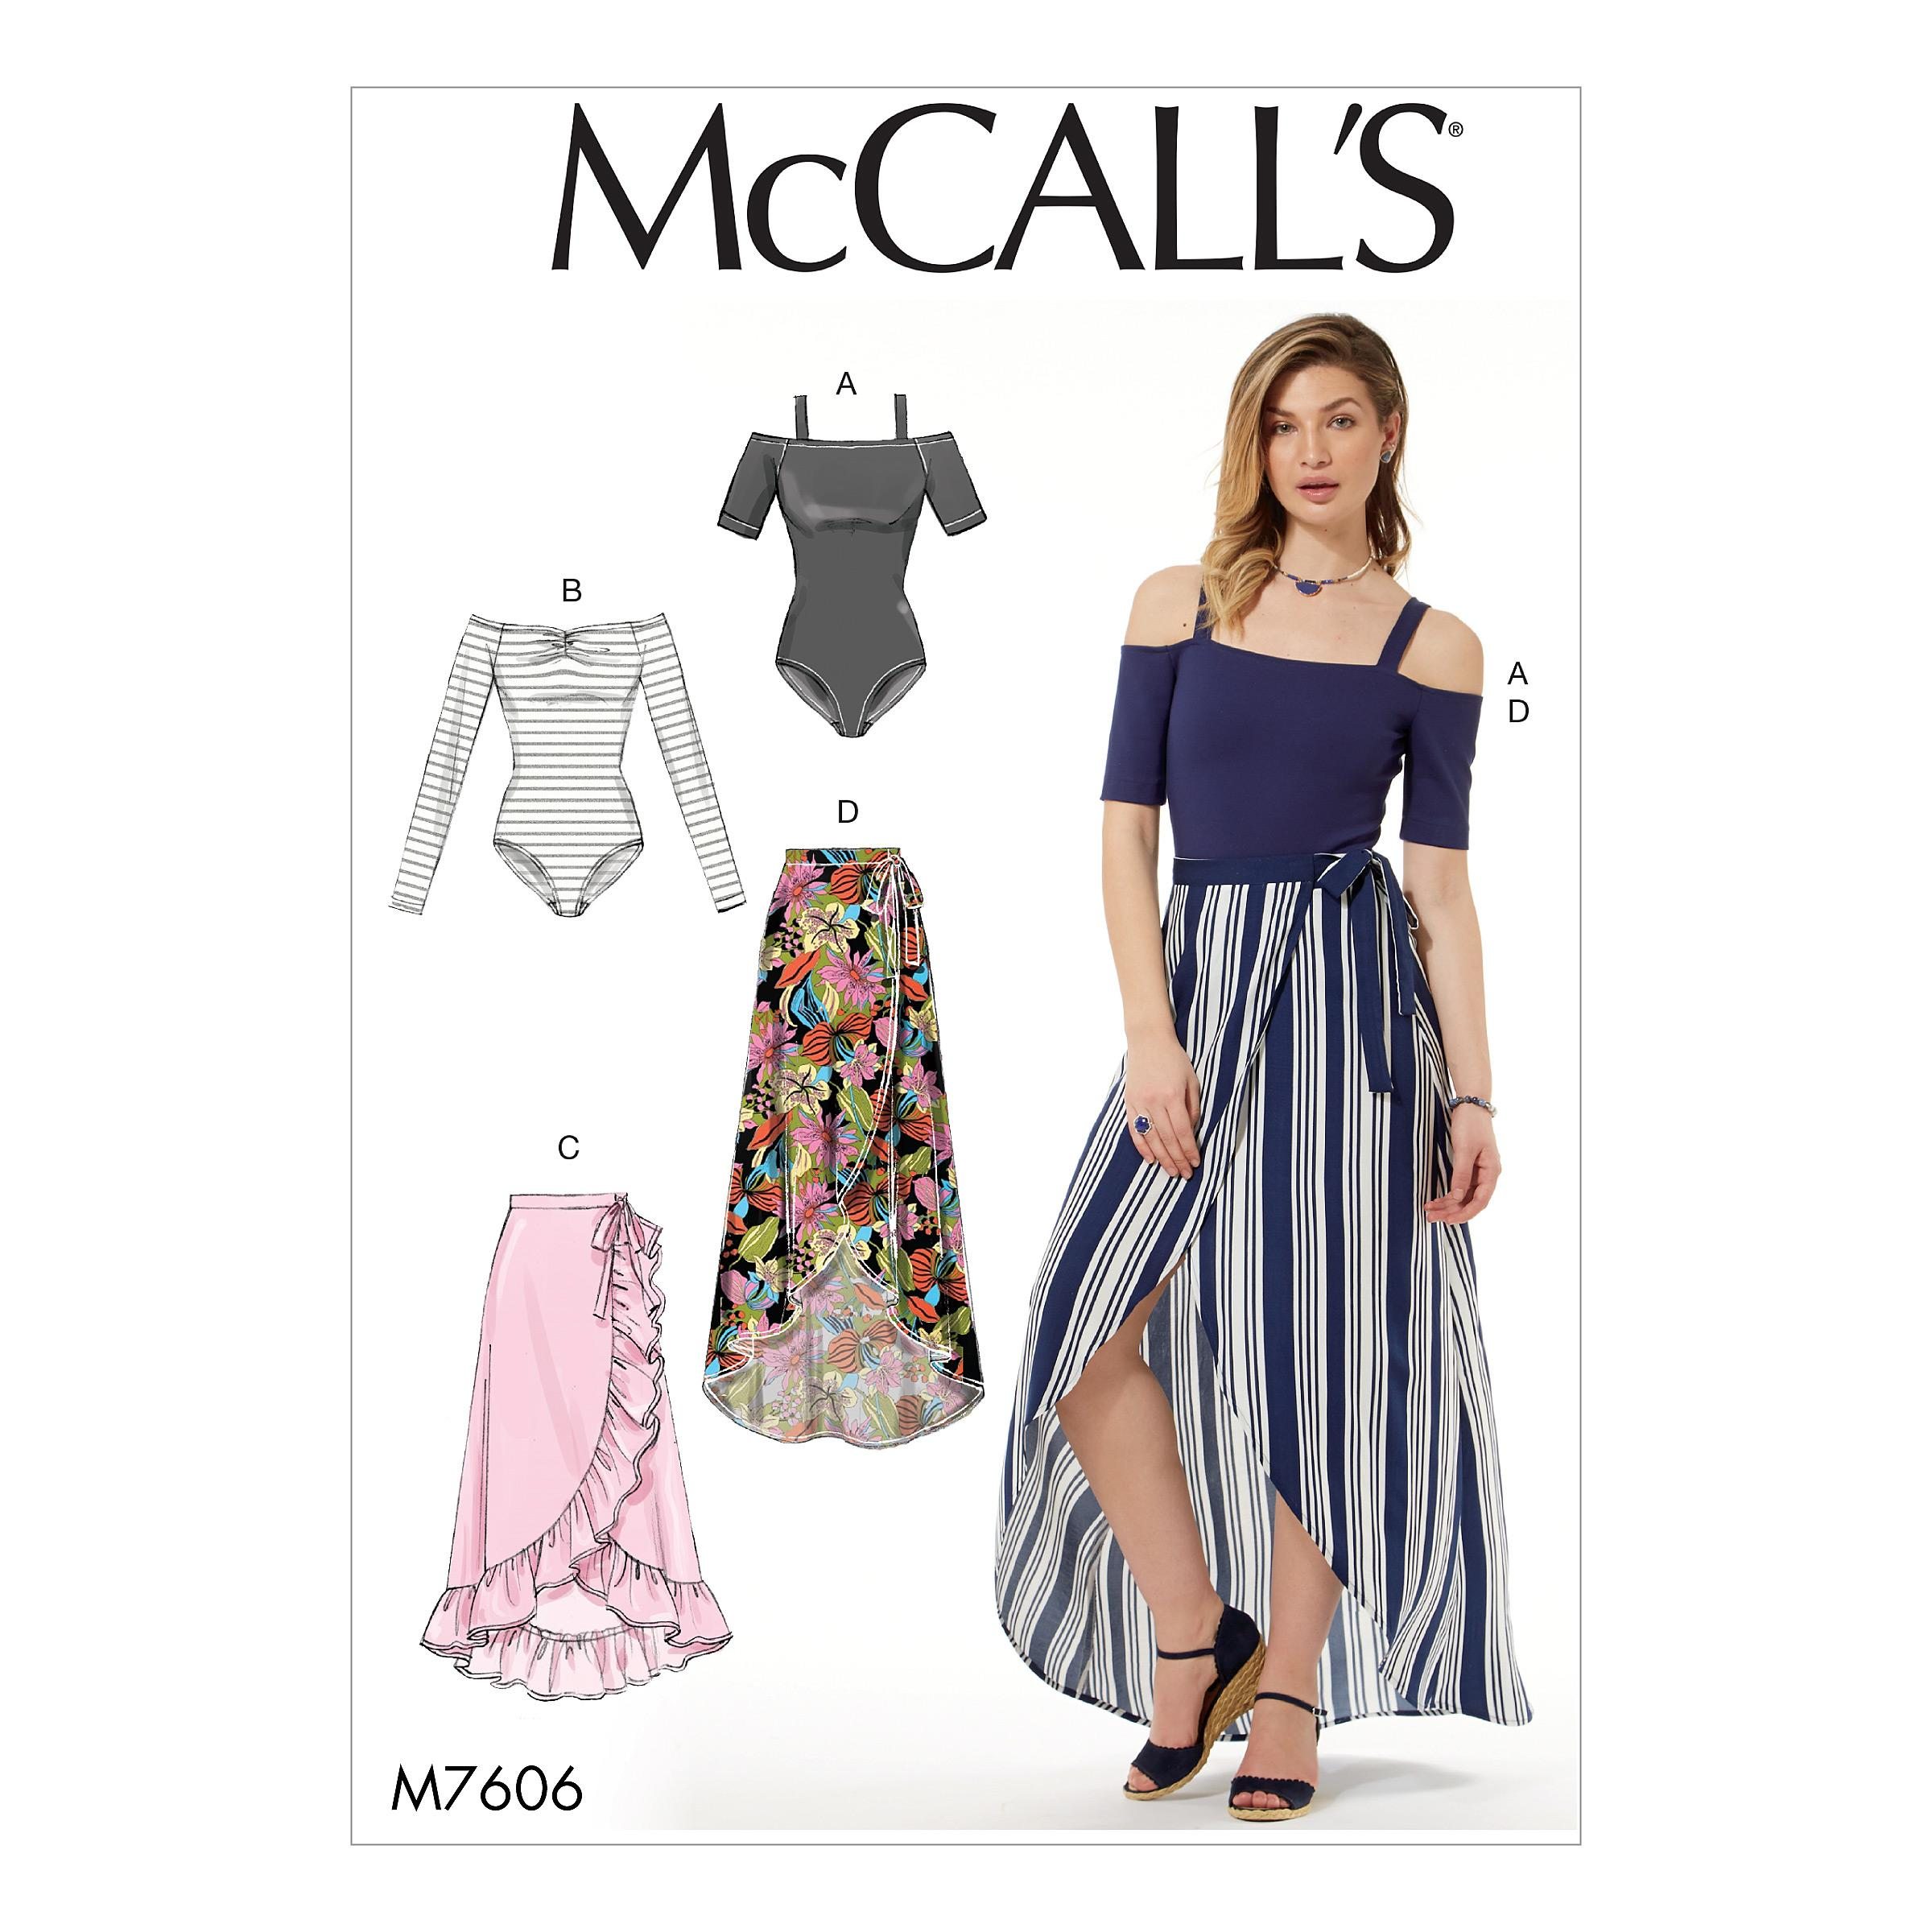 McCalls M7606 Misses Pants, Jumpsuits & Shorts